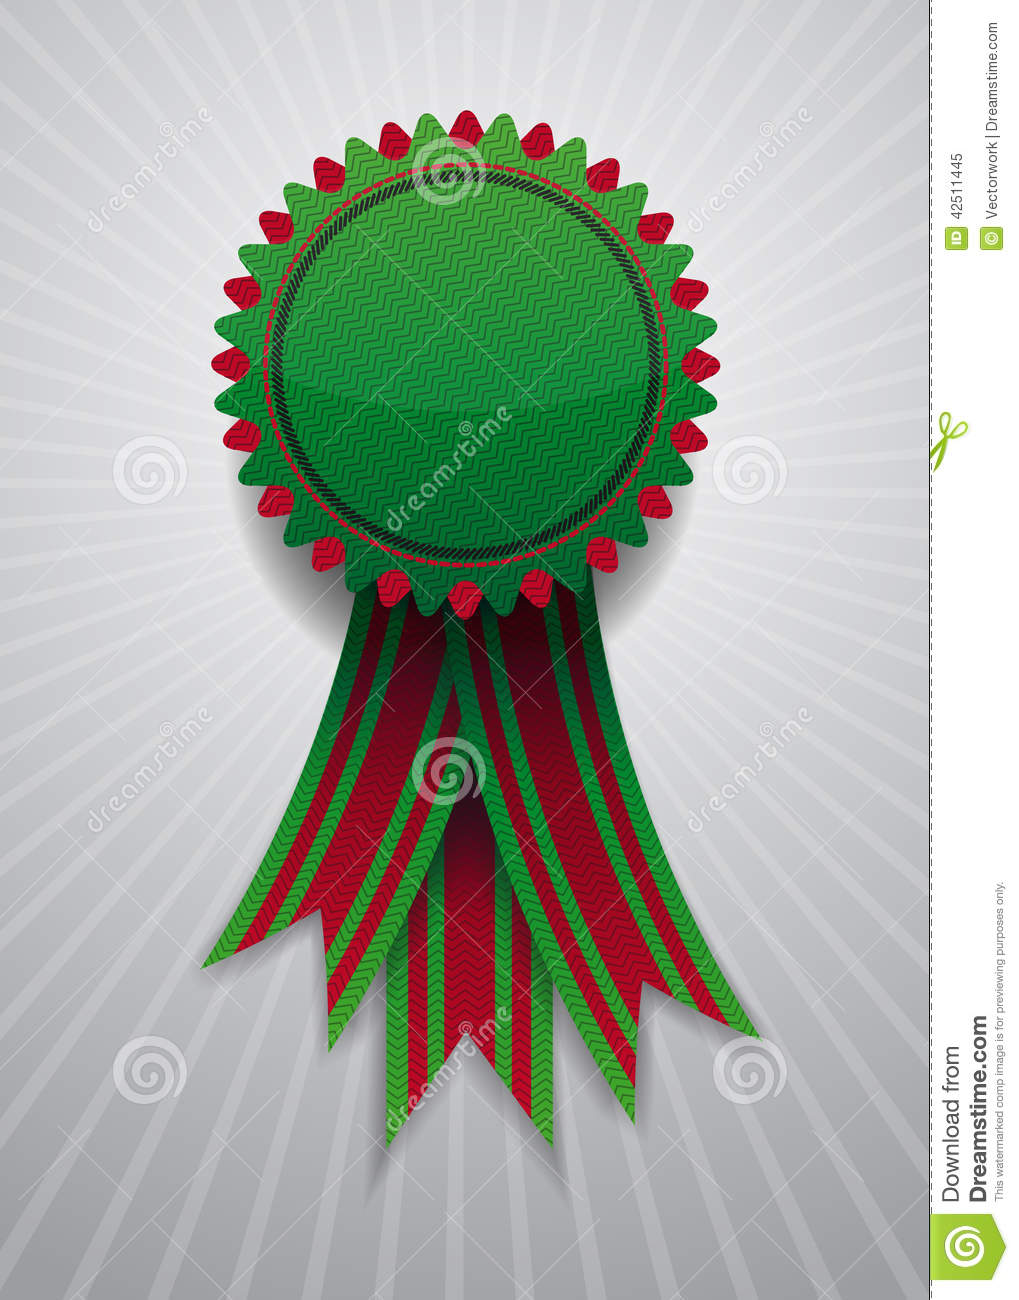 Icon with red and green ribbon